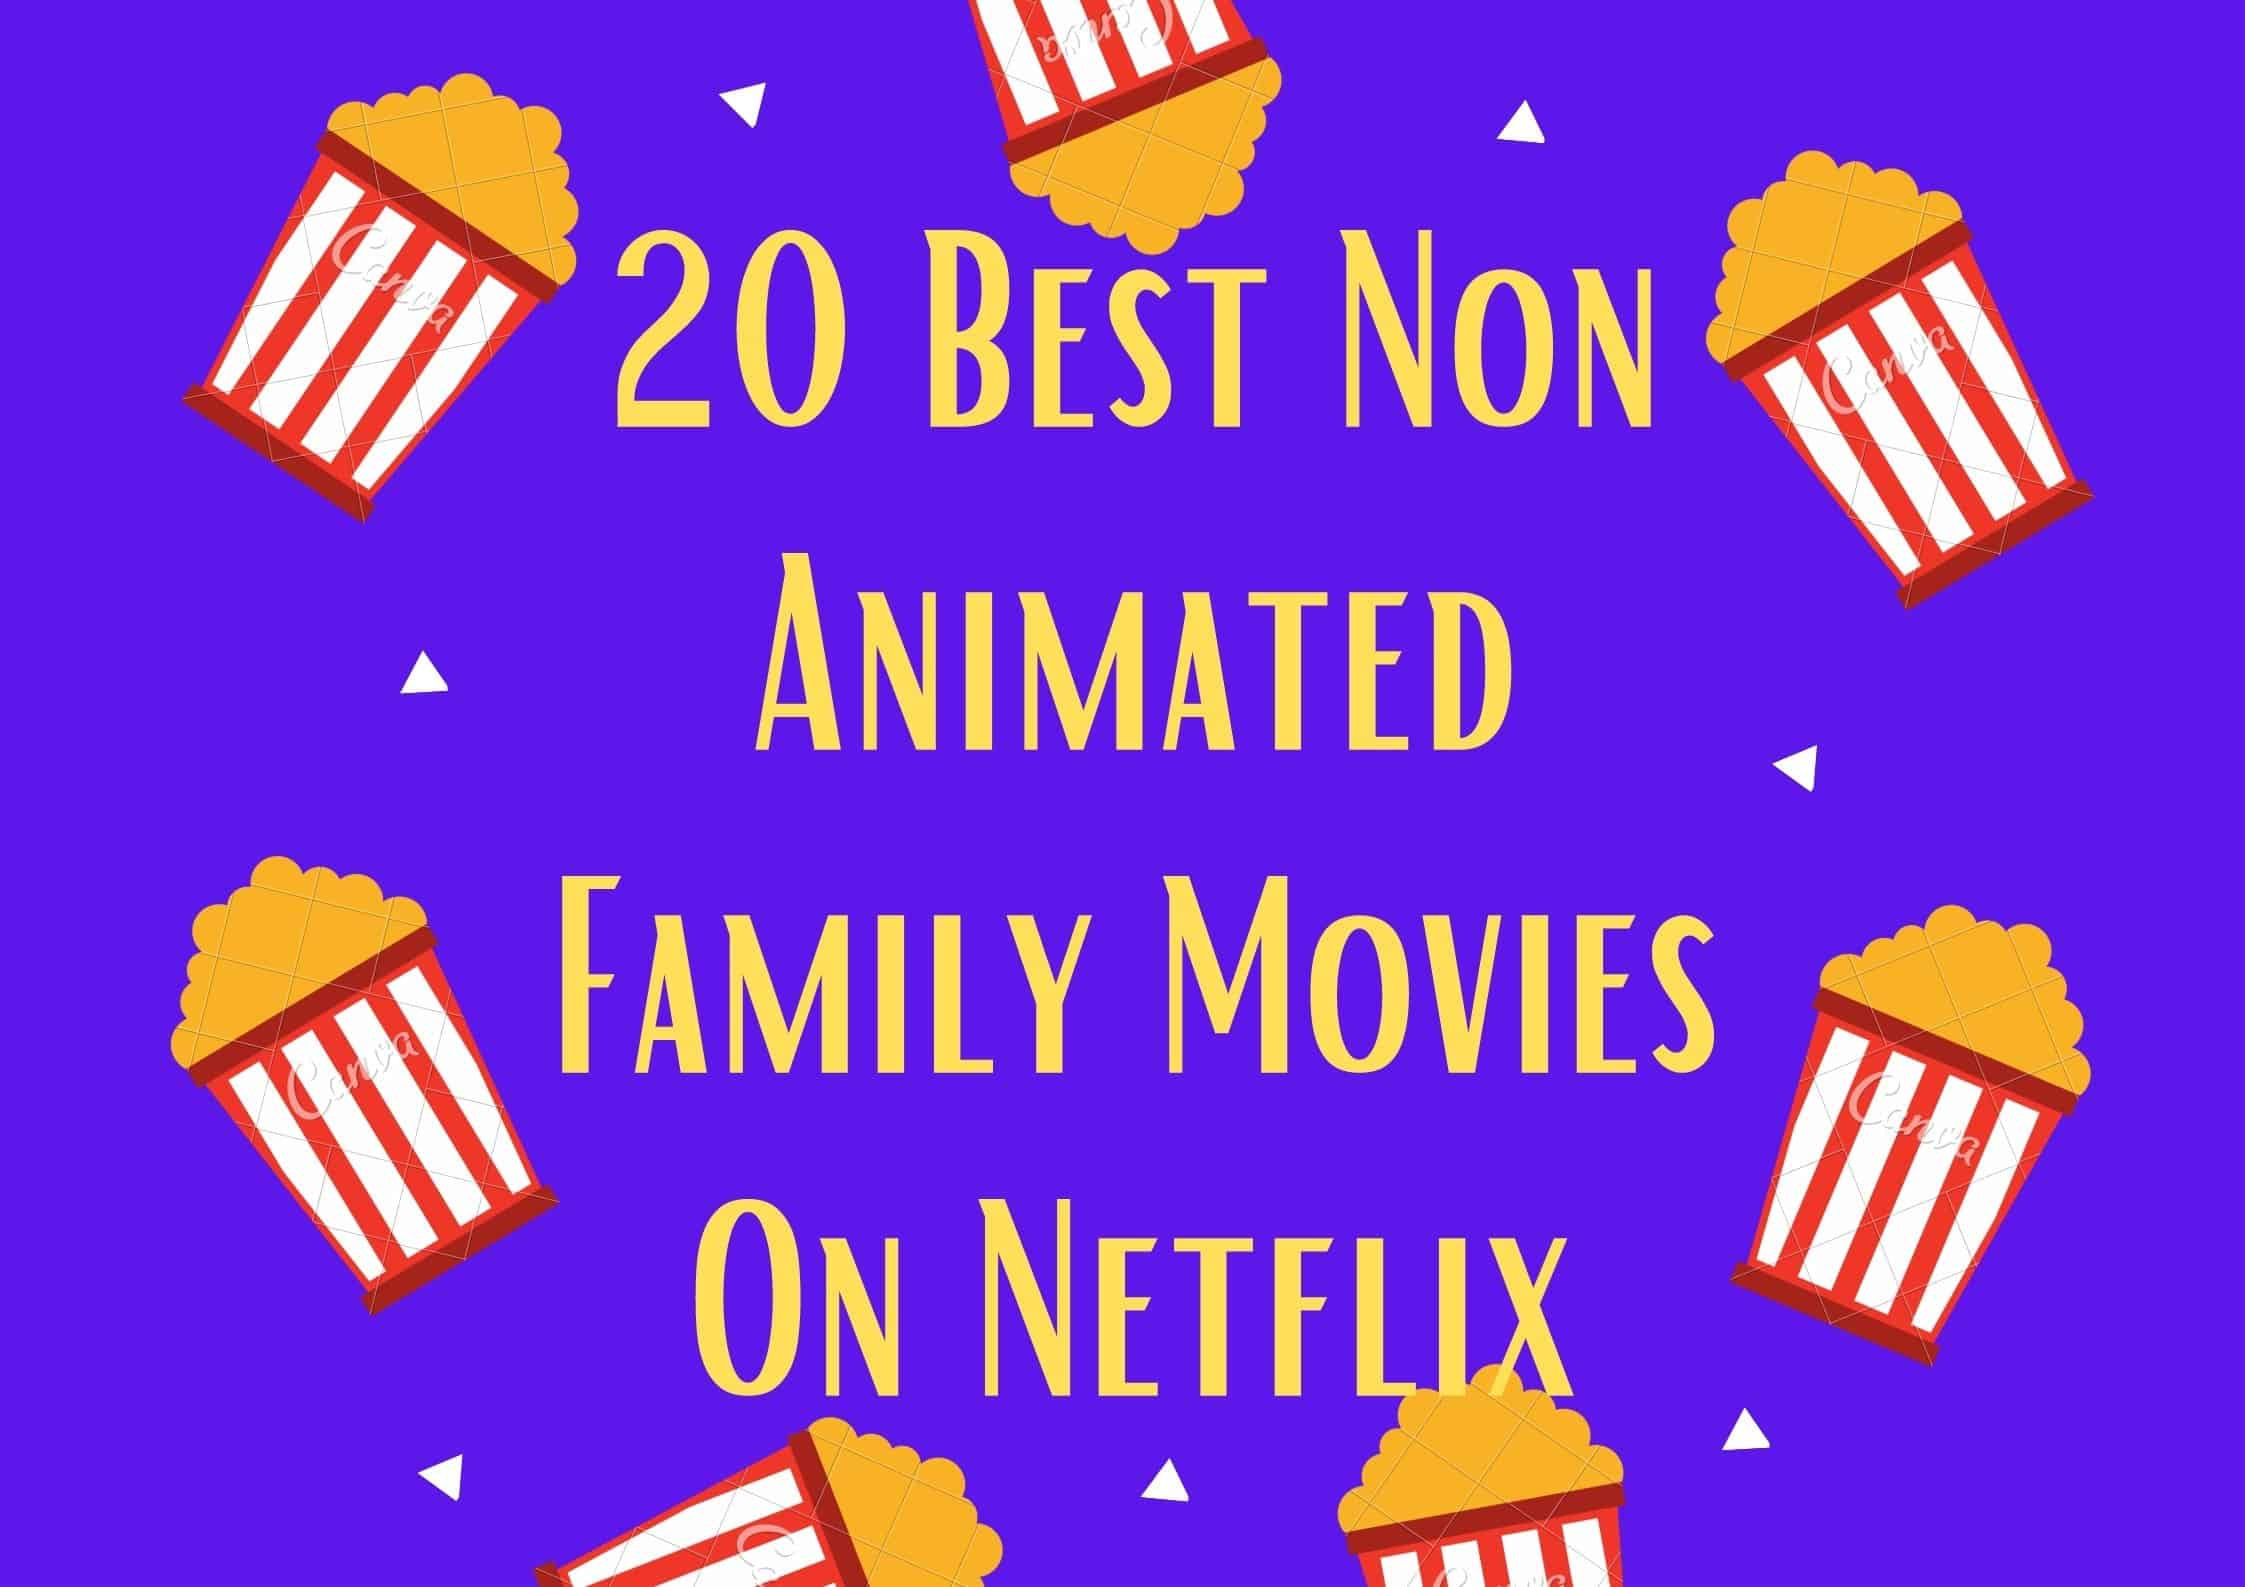 best non animated family movies on netflix